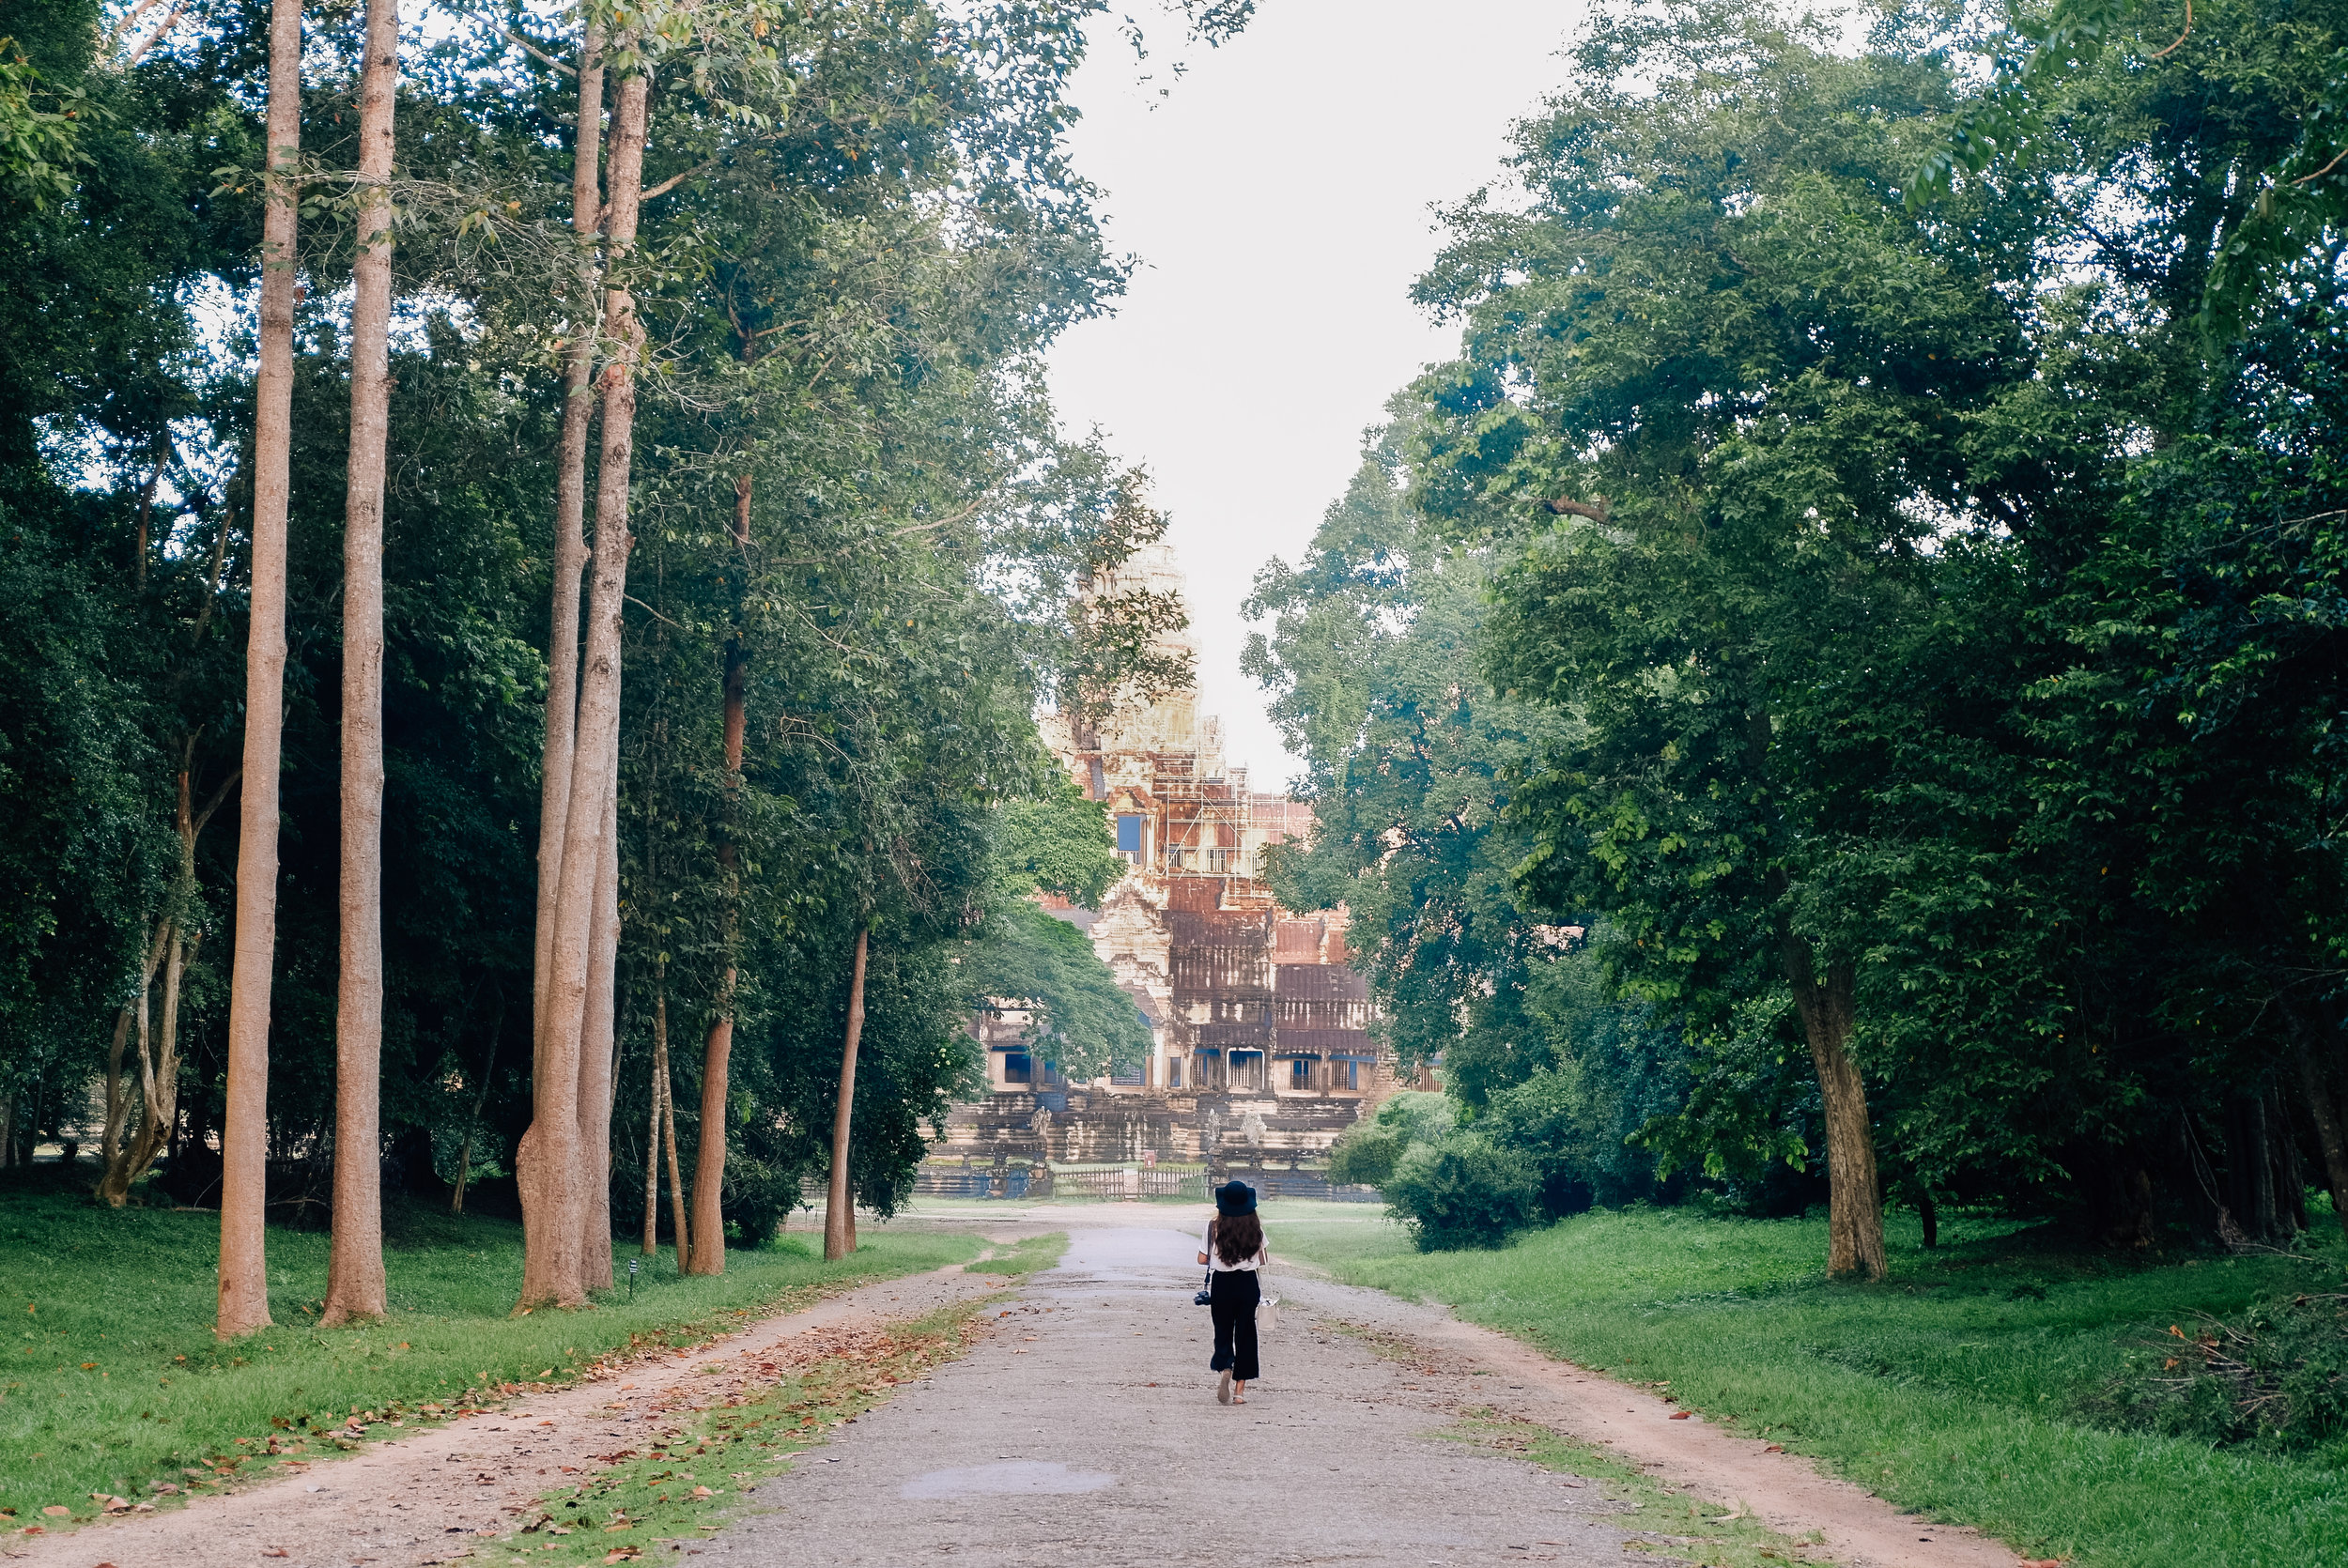 The pathway towards the temple